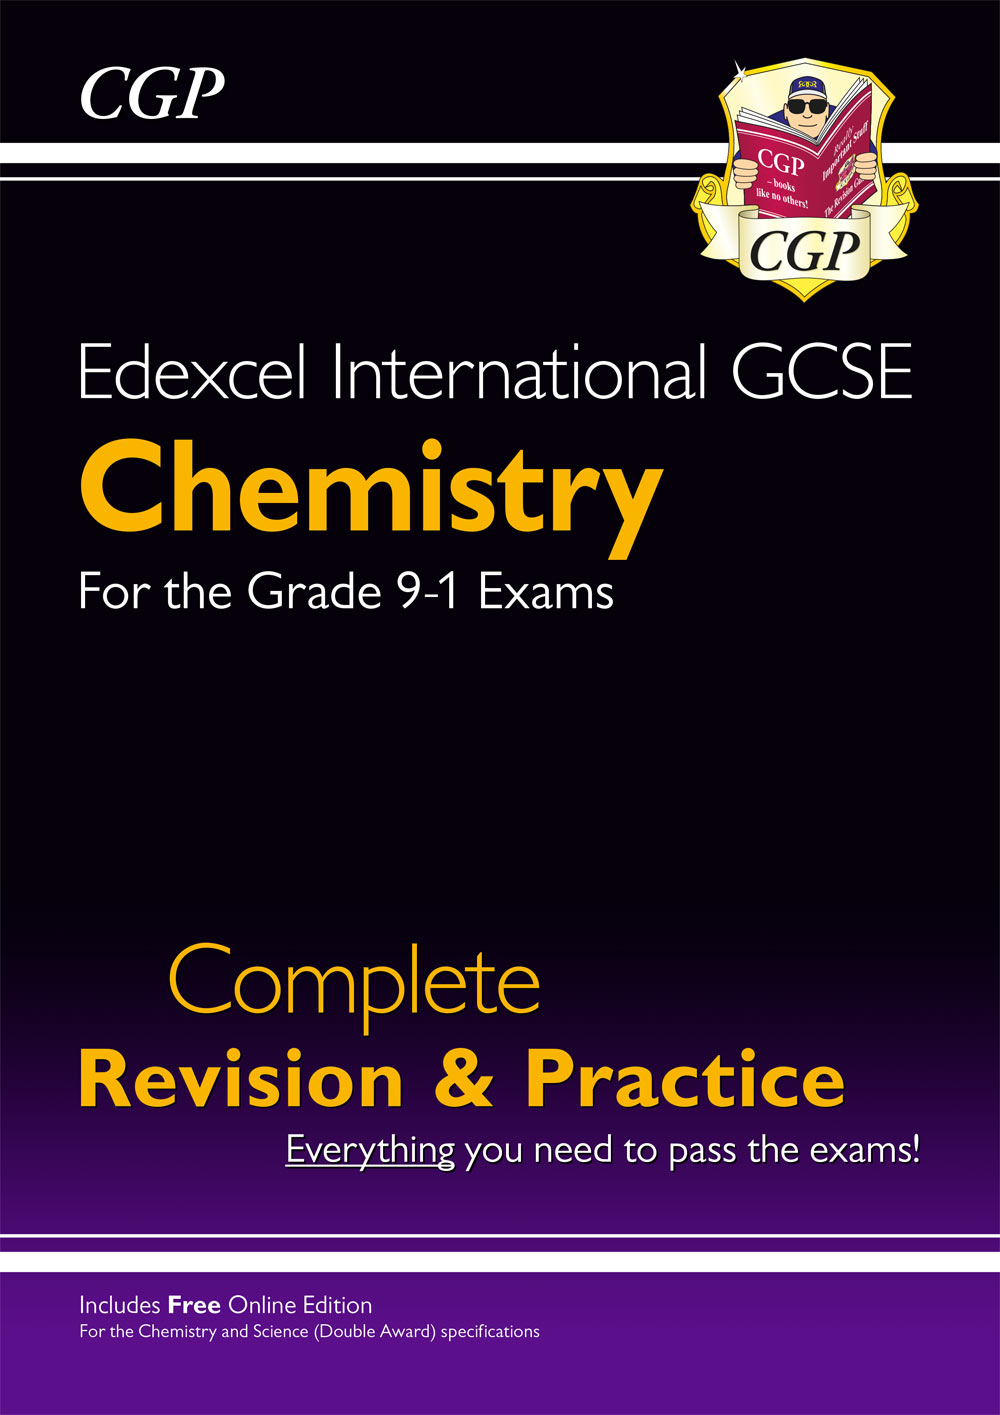 CESI42 - Grade 9-1 Edexcel International GCSE Chemistry: Complete Revision & Practice with Online Ed